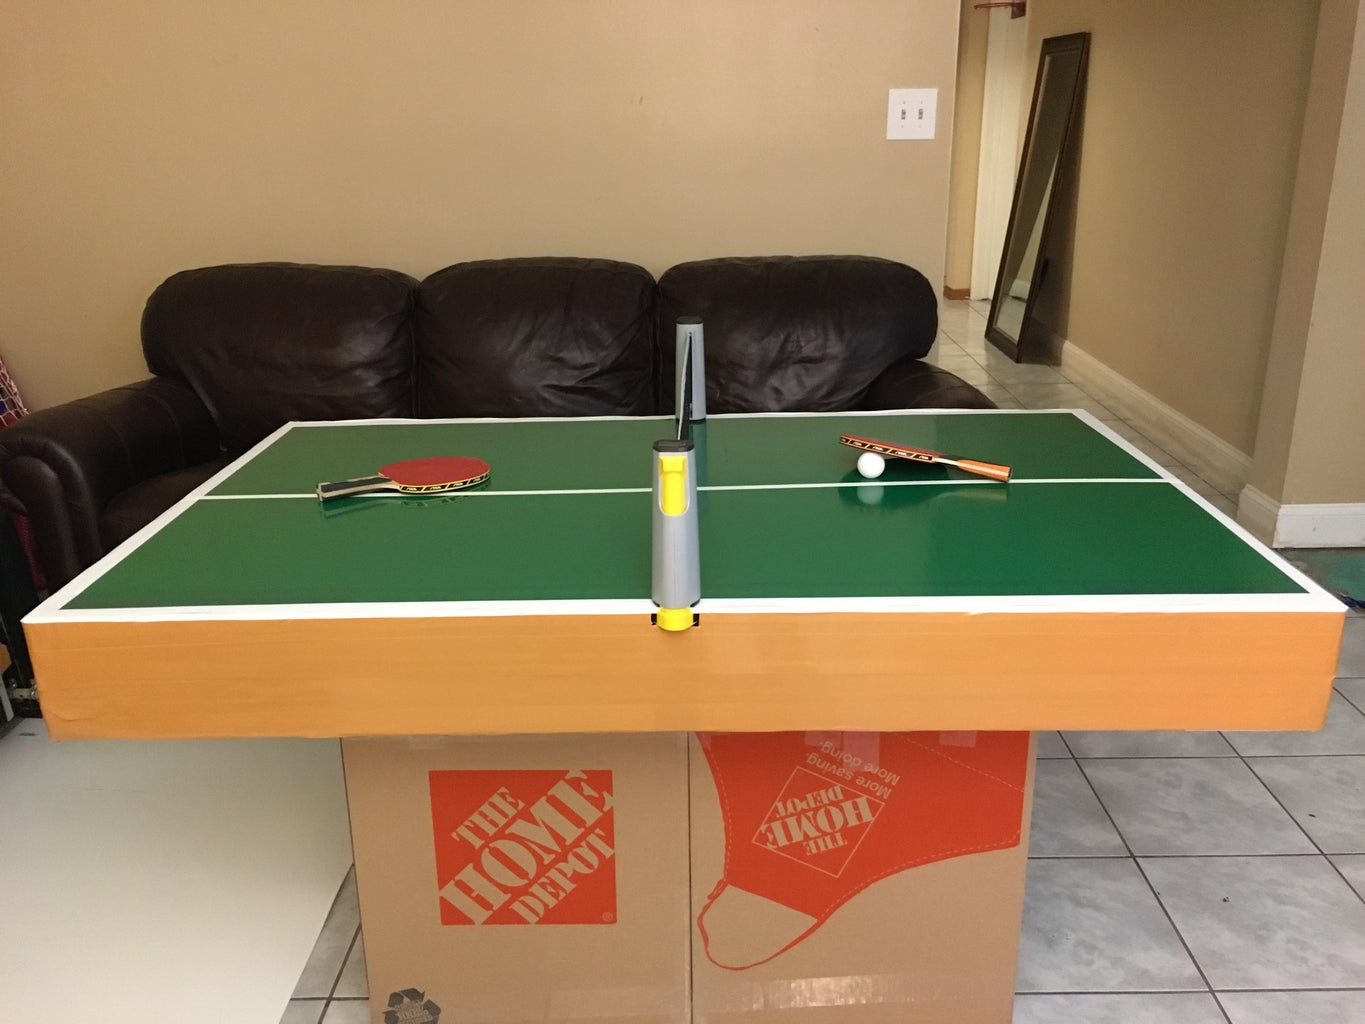 How to Make a Ping Pong Table Out of Cardboard